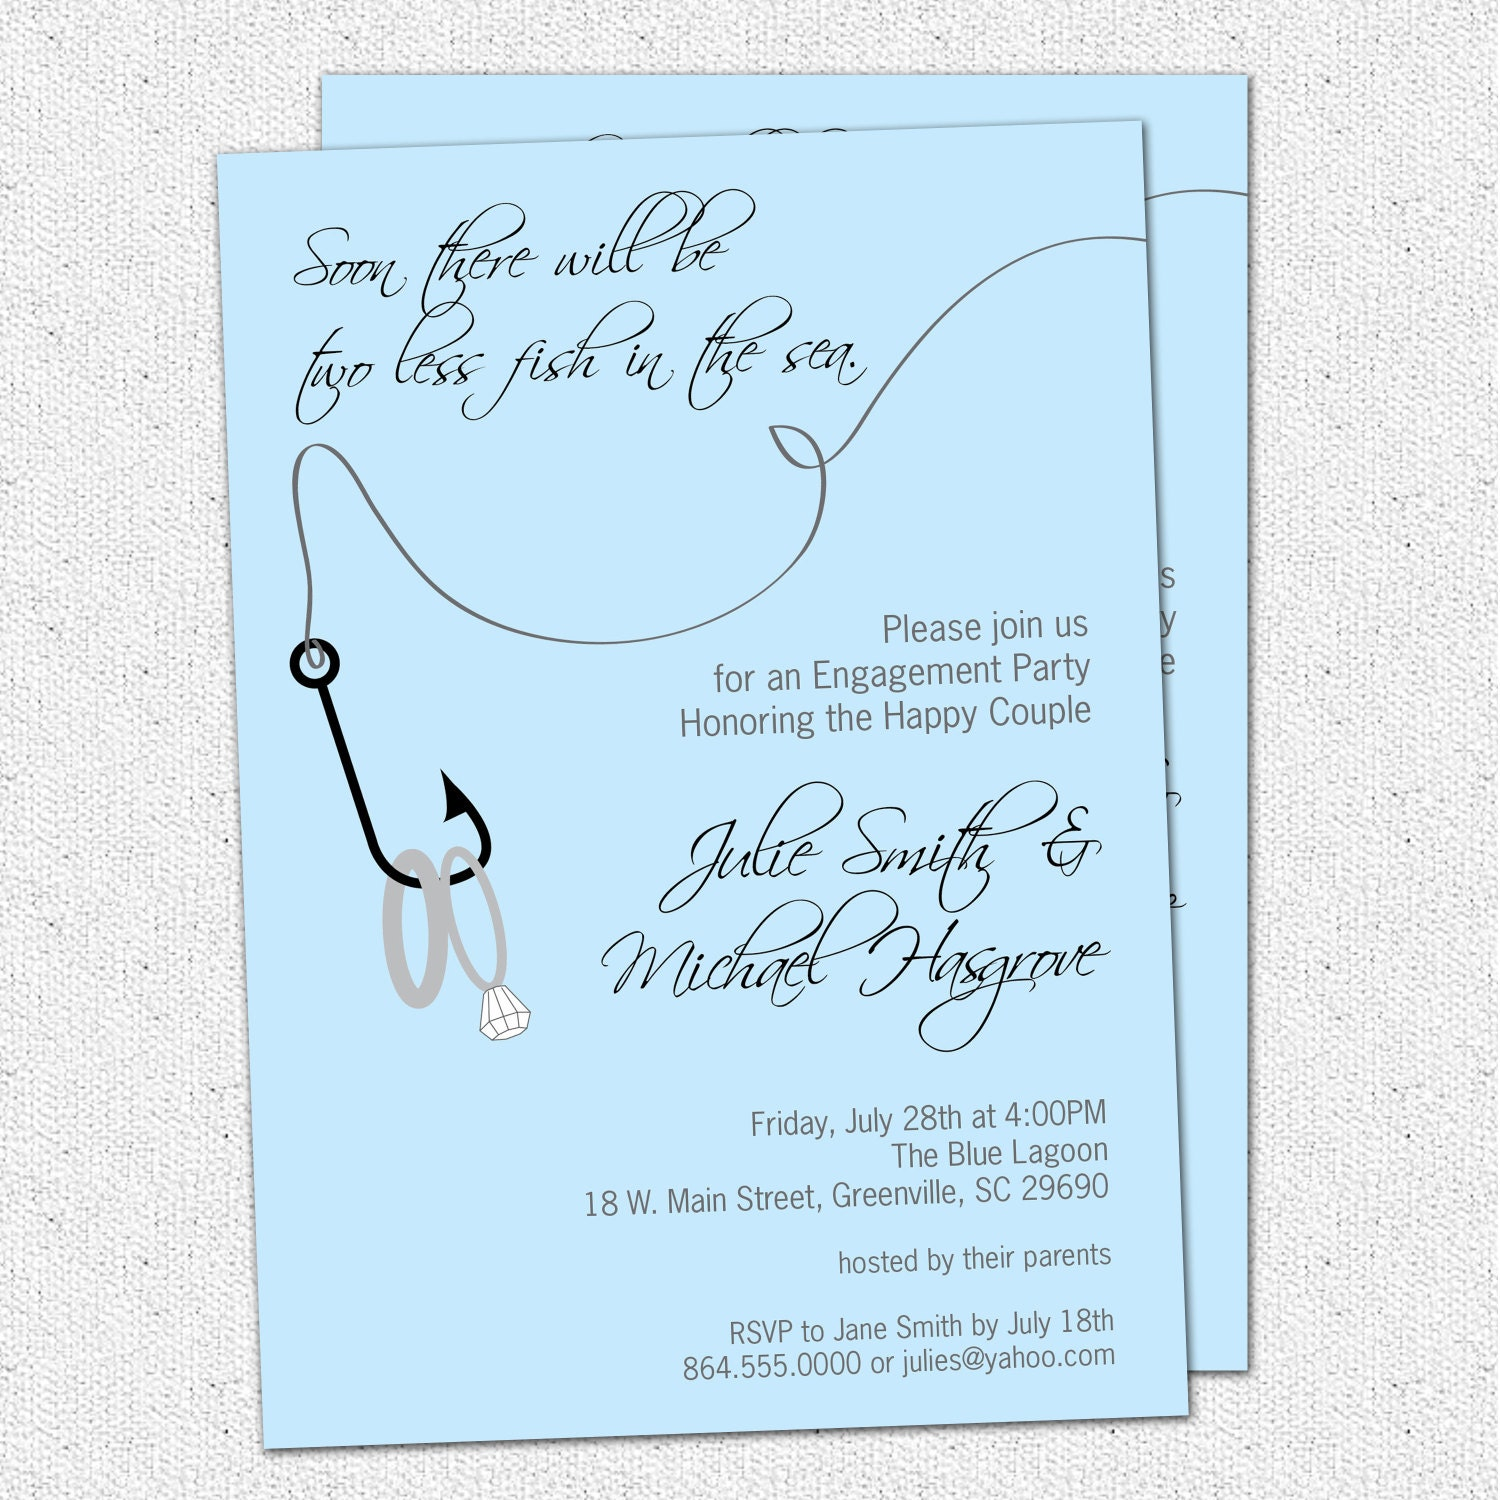 Engagement party invitation couples bridal shower two less for Online engagement party invitations